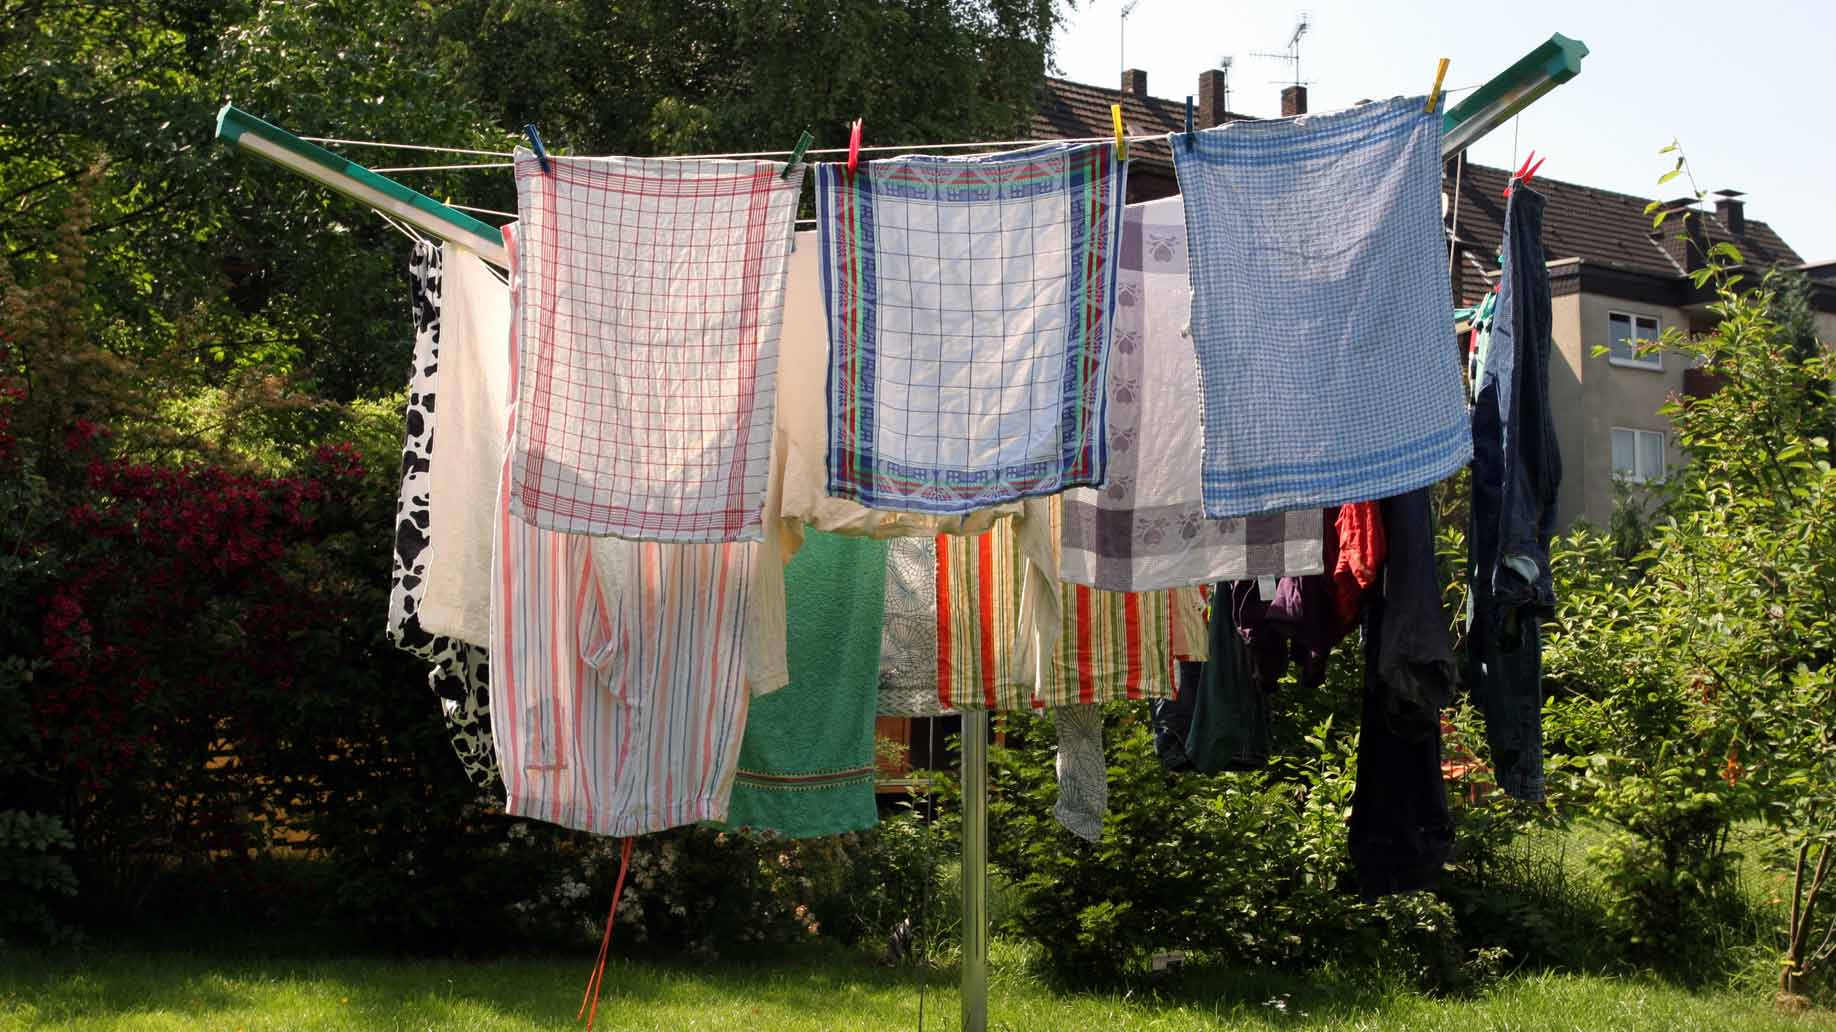 clothes drying outdoors